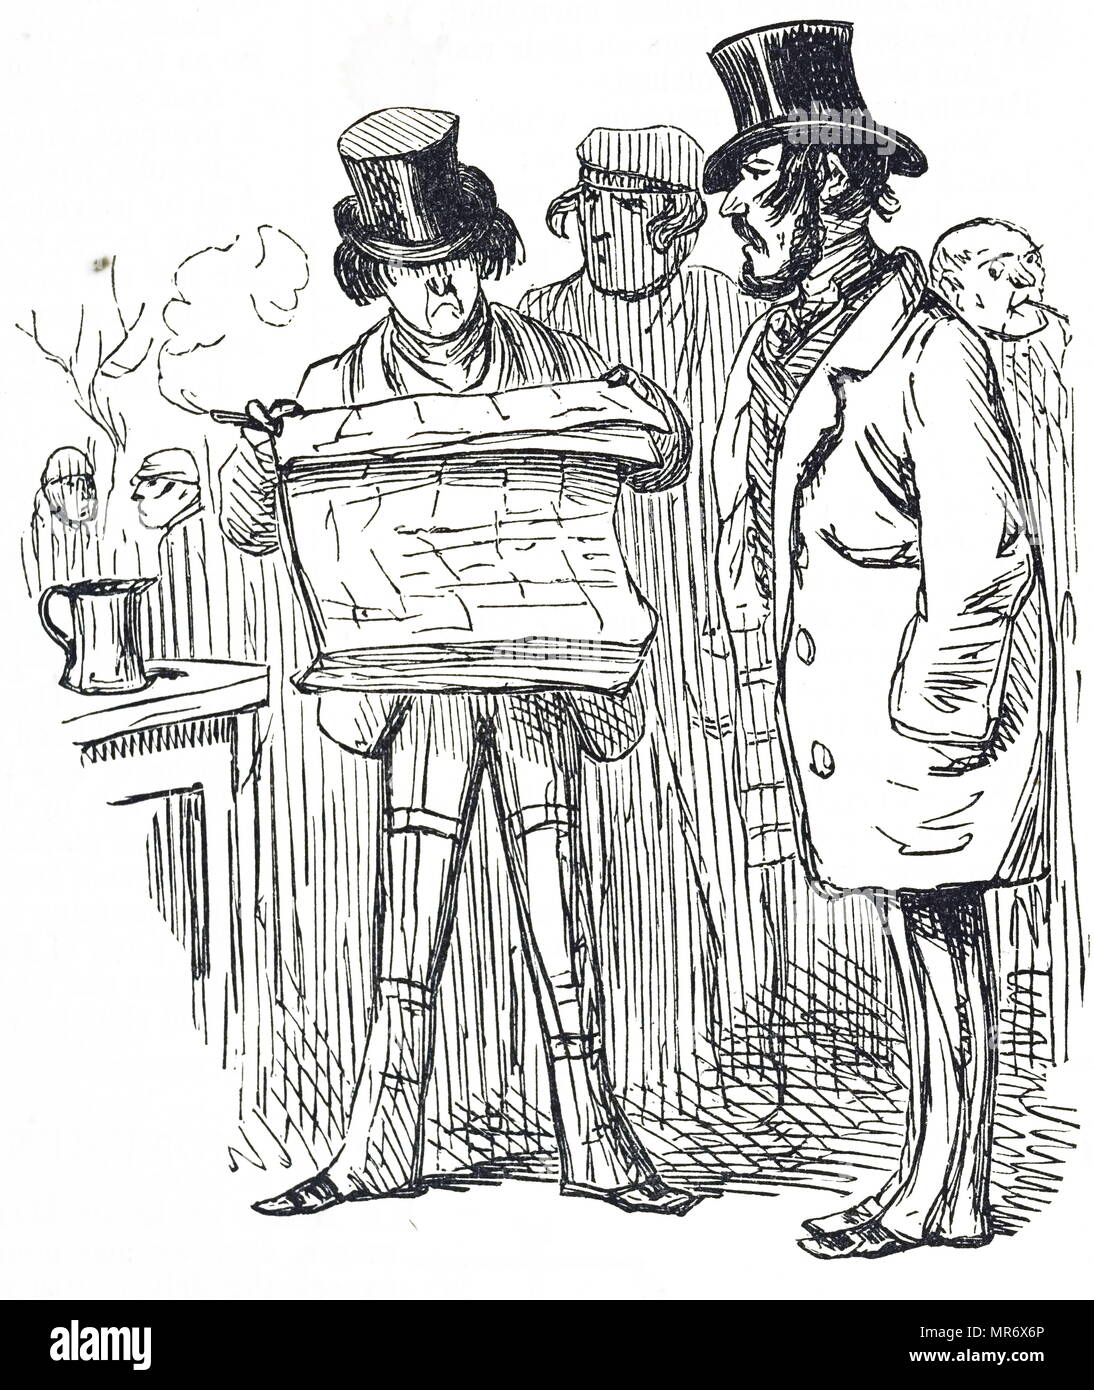 Cartoon titled 'Ill-news for the criminal fraternity'. Dated 19th century - Stock Image